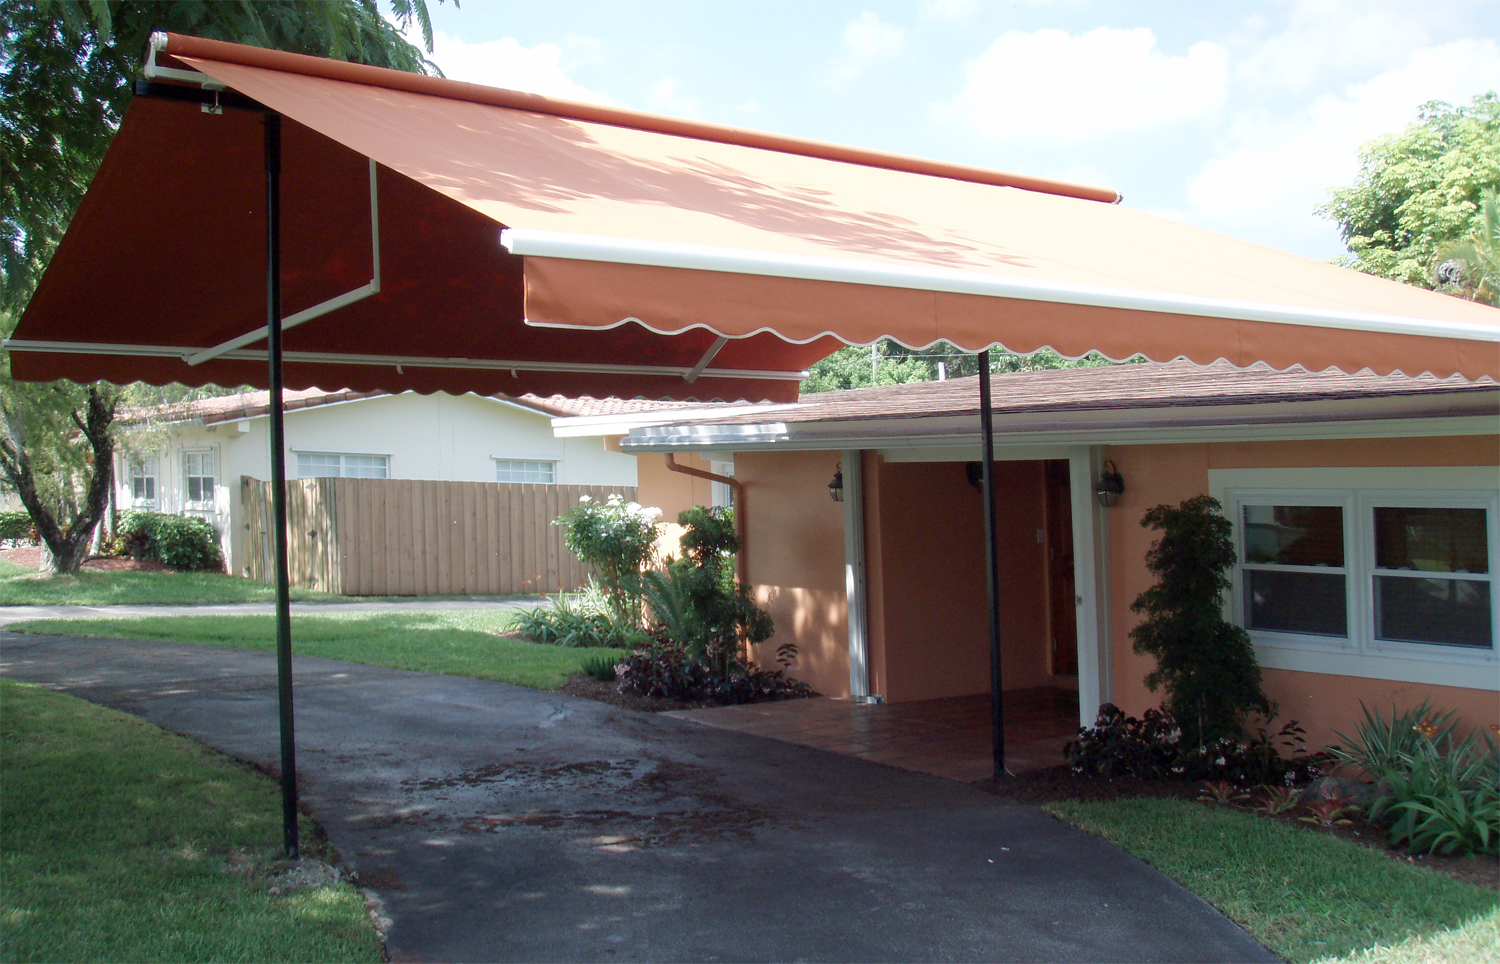 Butterffly Awning Over Driveway & Butterfly u0026 Roll Down Shades | Buzzman Awning Distributors